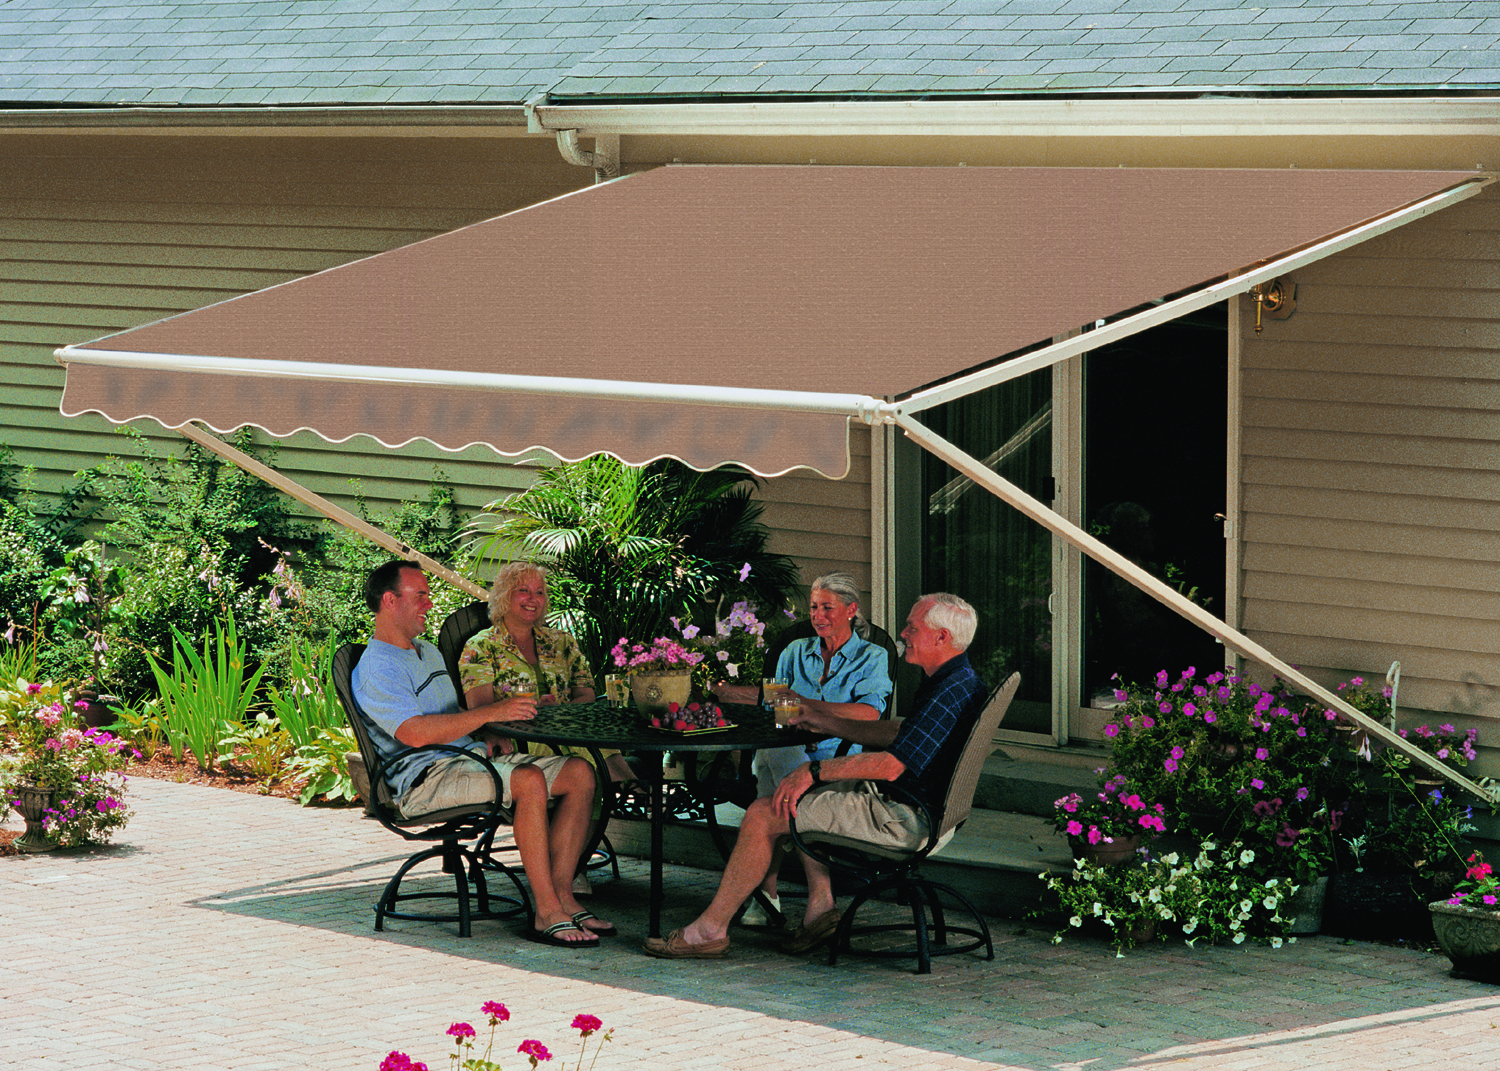 Outdoor Patio and Deck AwningsSunSetter Motorized Retractable Awnings in LA by Galaxy Draperies. Retractable Awnings For Decks And Patios. Home Design Ideas